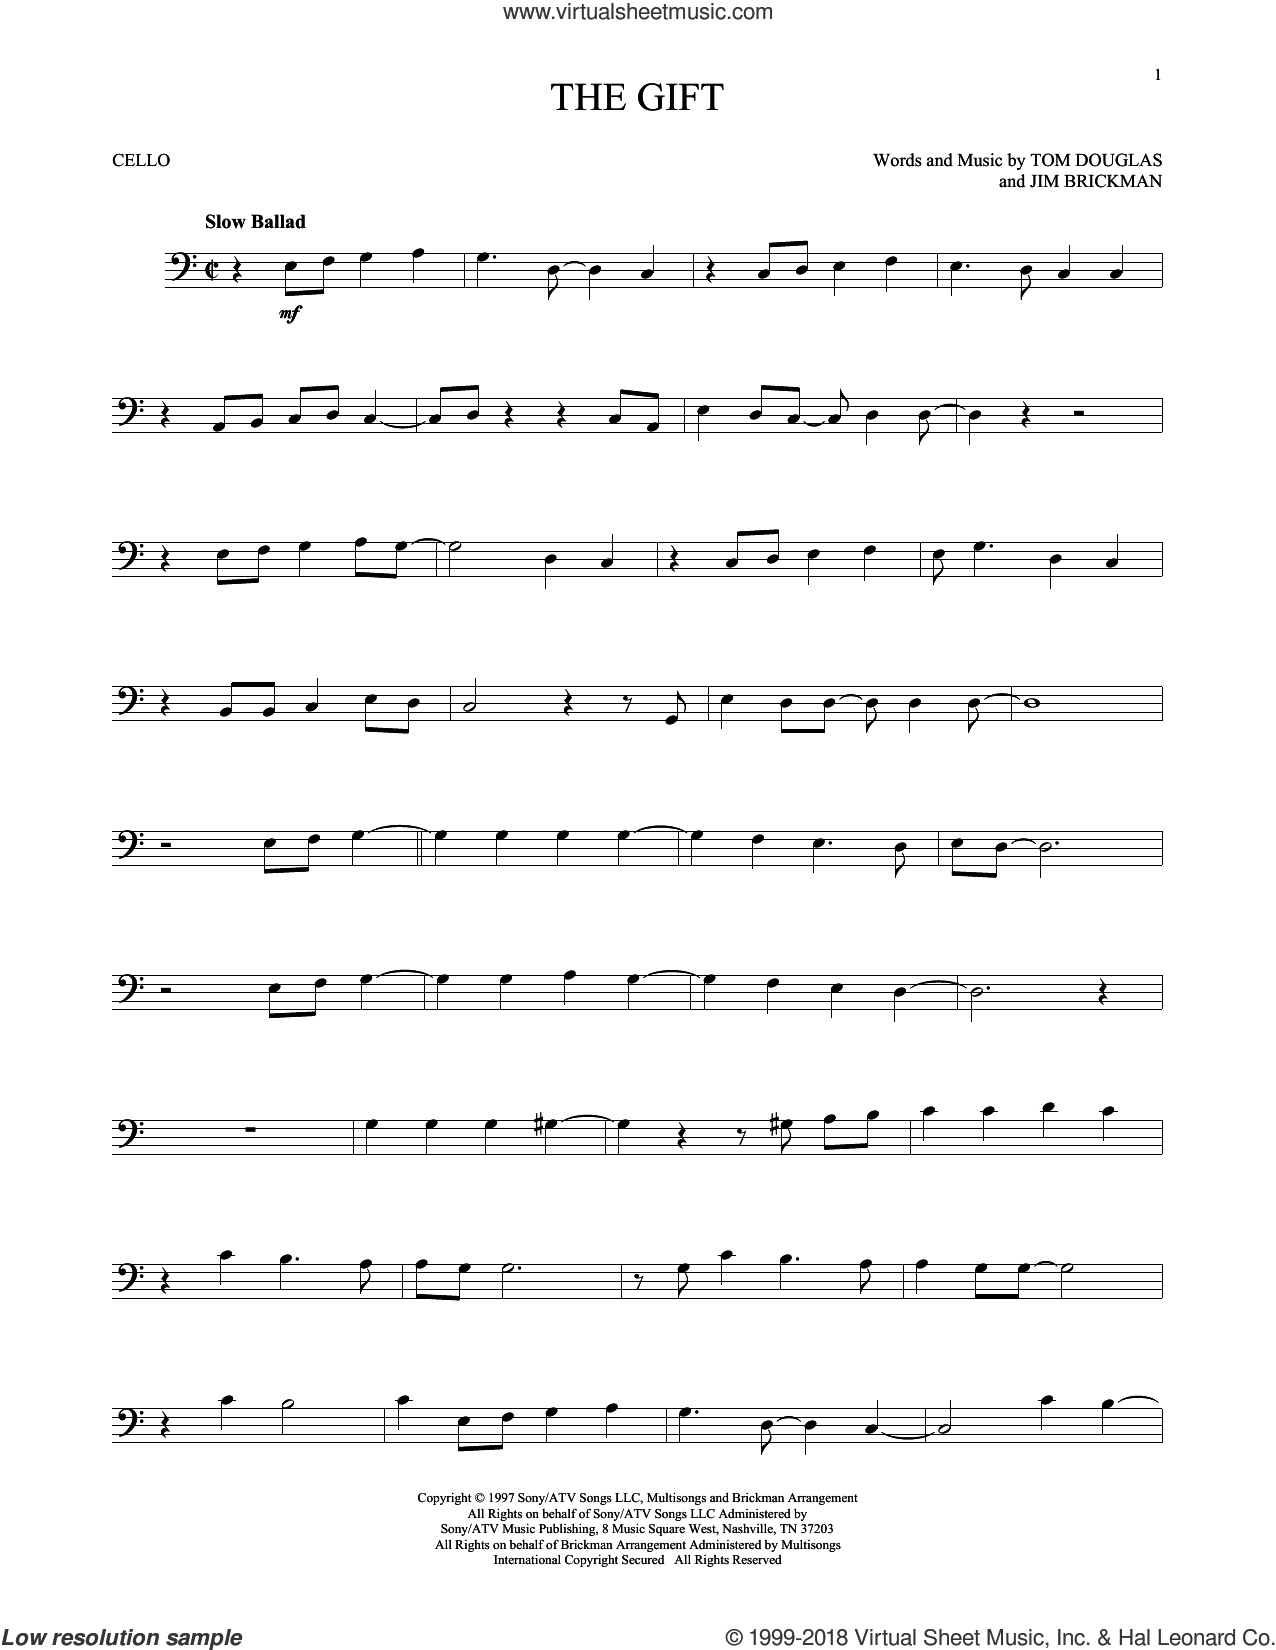 The Gift sheet music for cello solo by Tom Douglas